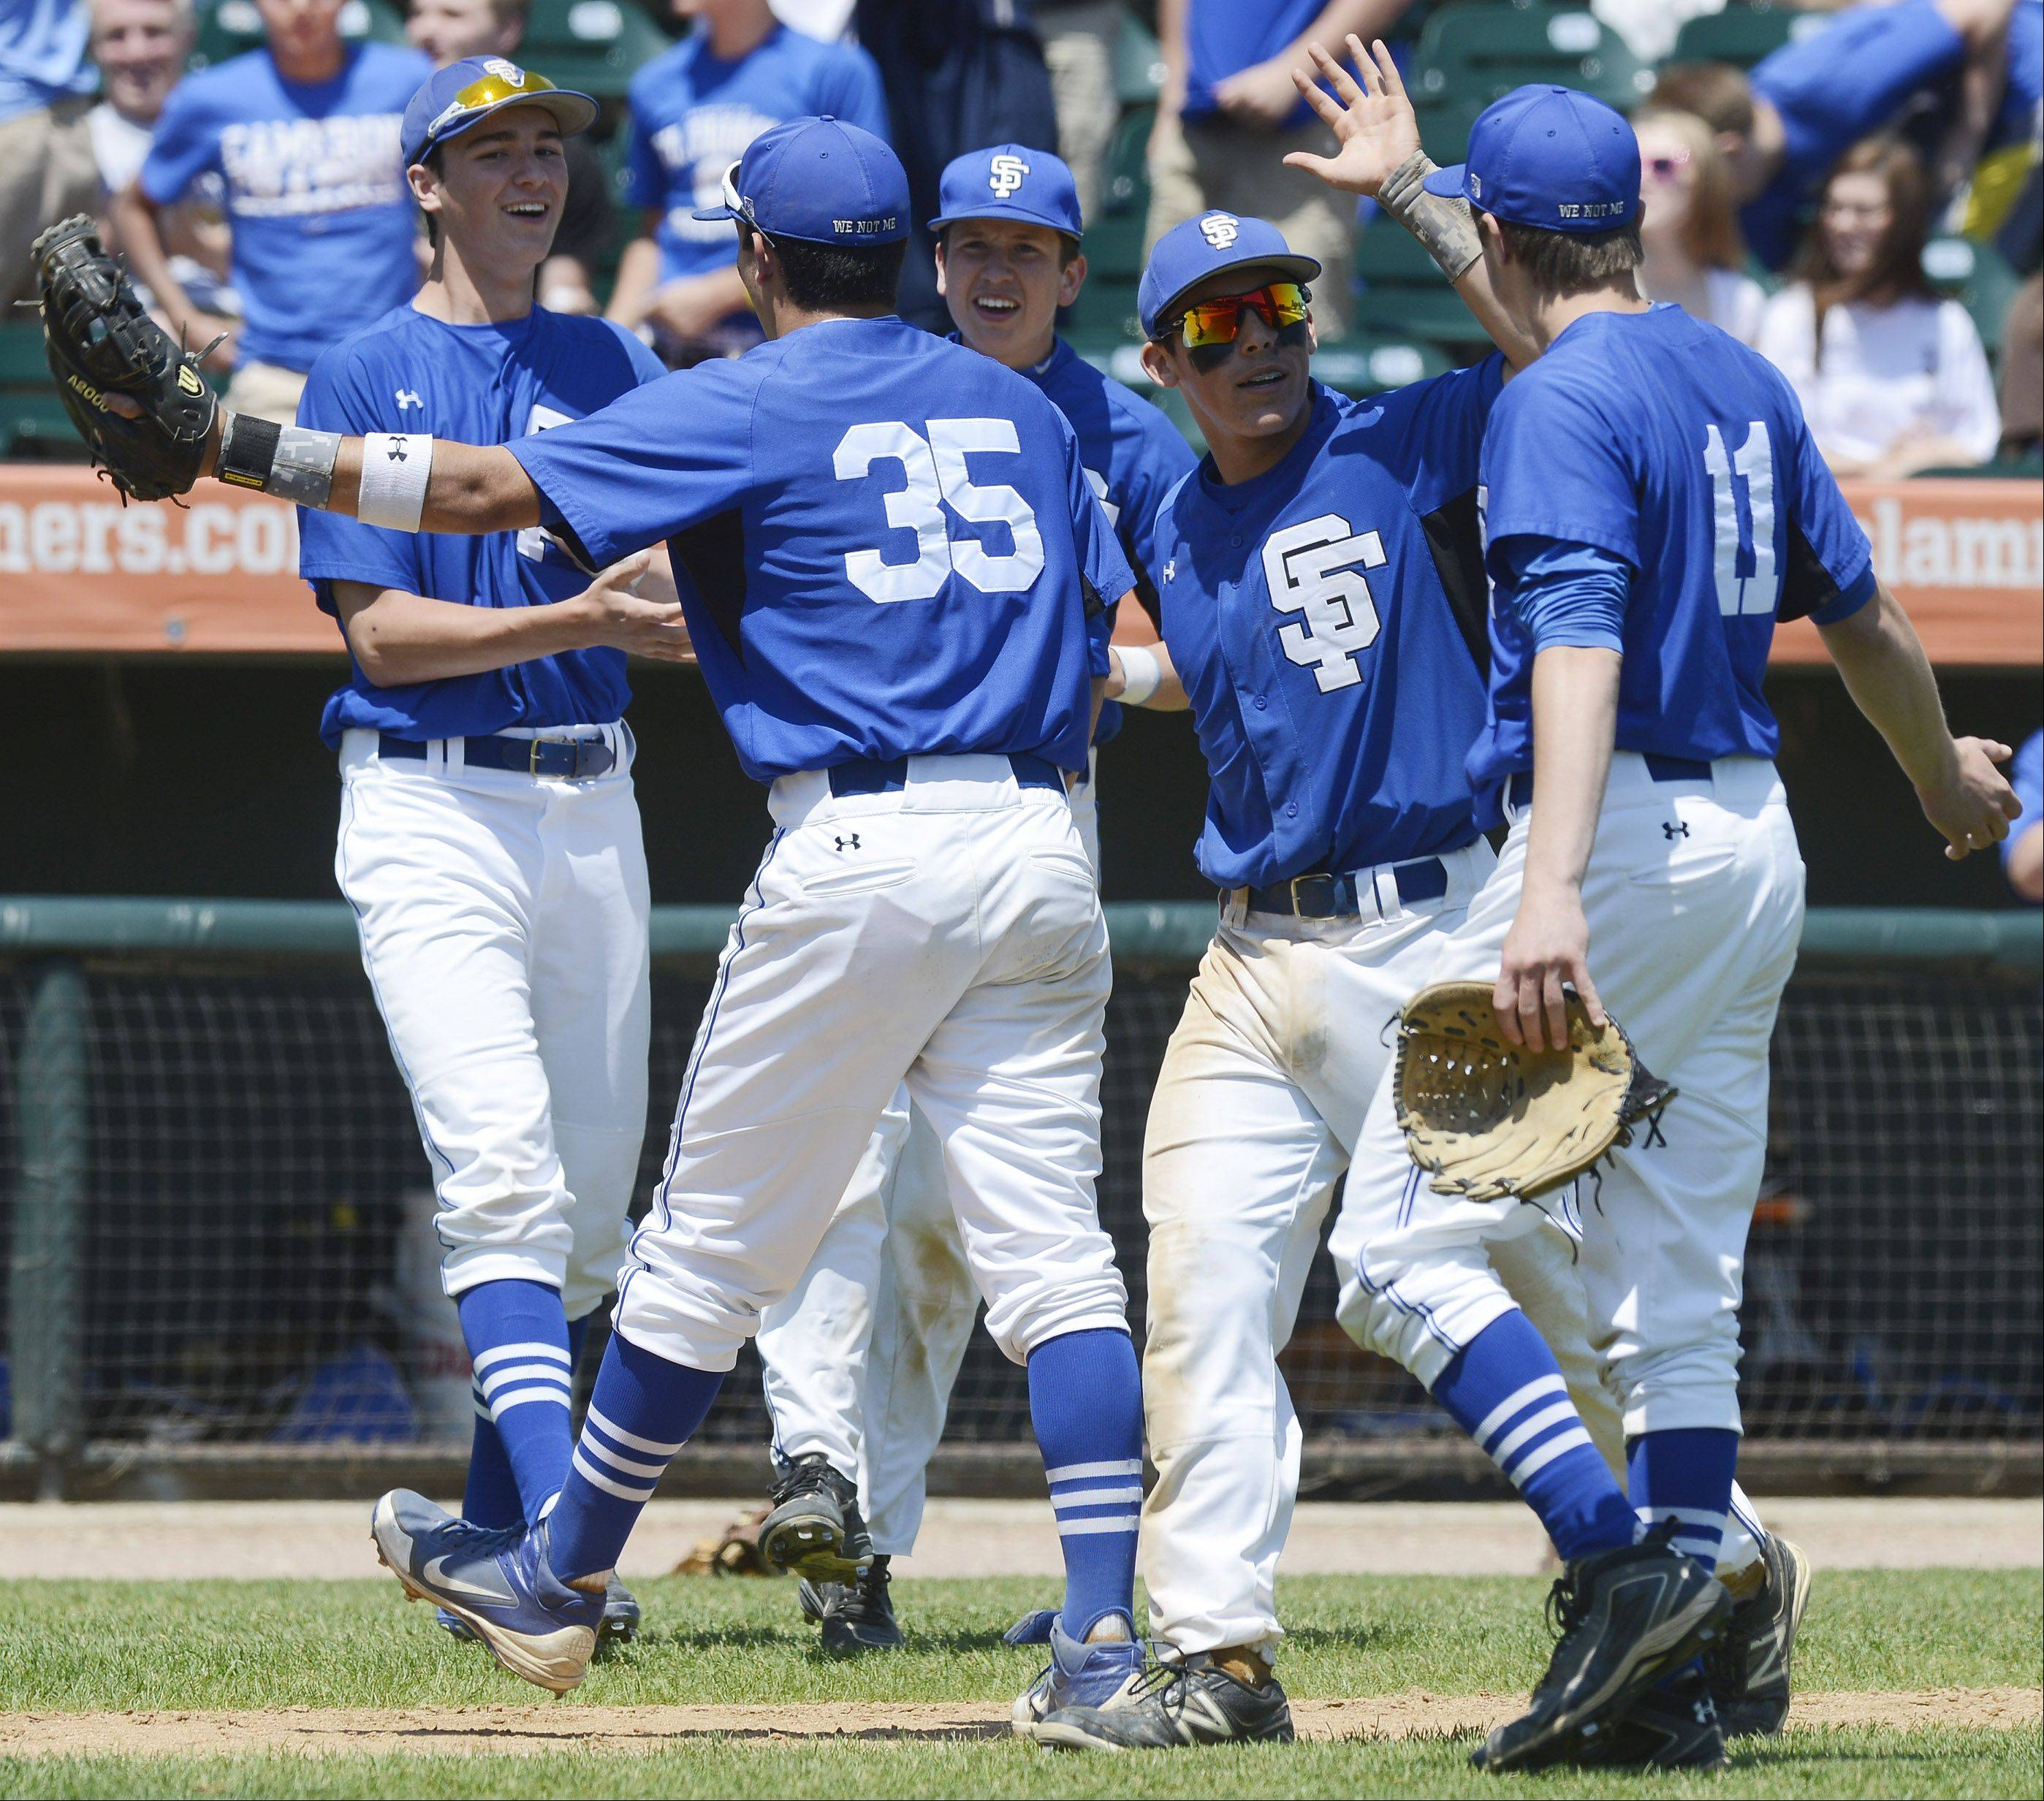 St. Francis players celebrate their victory over Grayslake Central during the Class 3A state baseball semifinal at Silver Cross Field in Joliet on Friday.